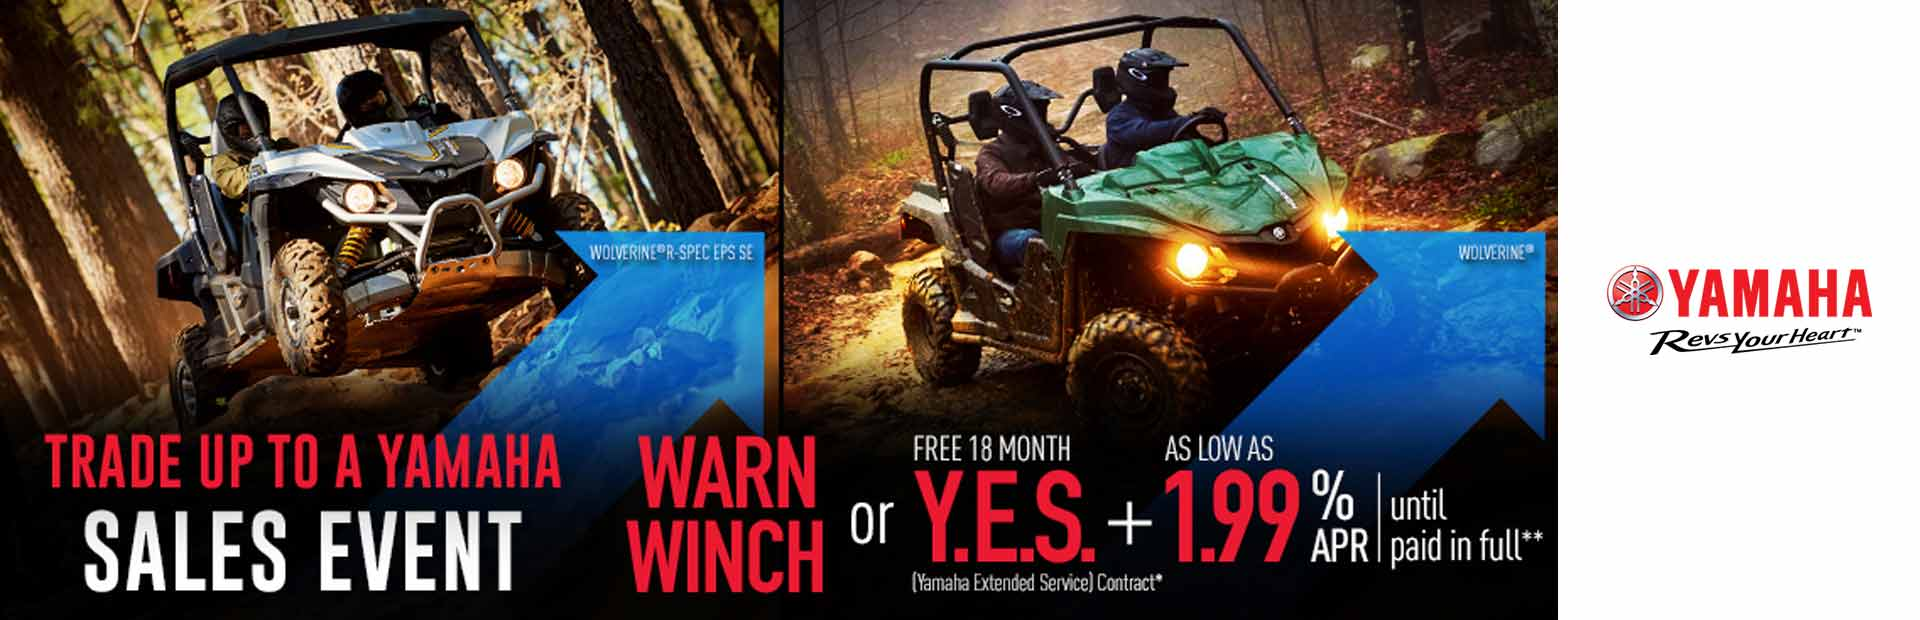 Yamaha: Warn Winch or Y.E.S. + As Low As 1.99% APR